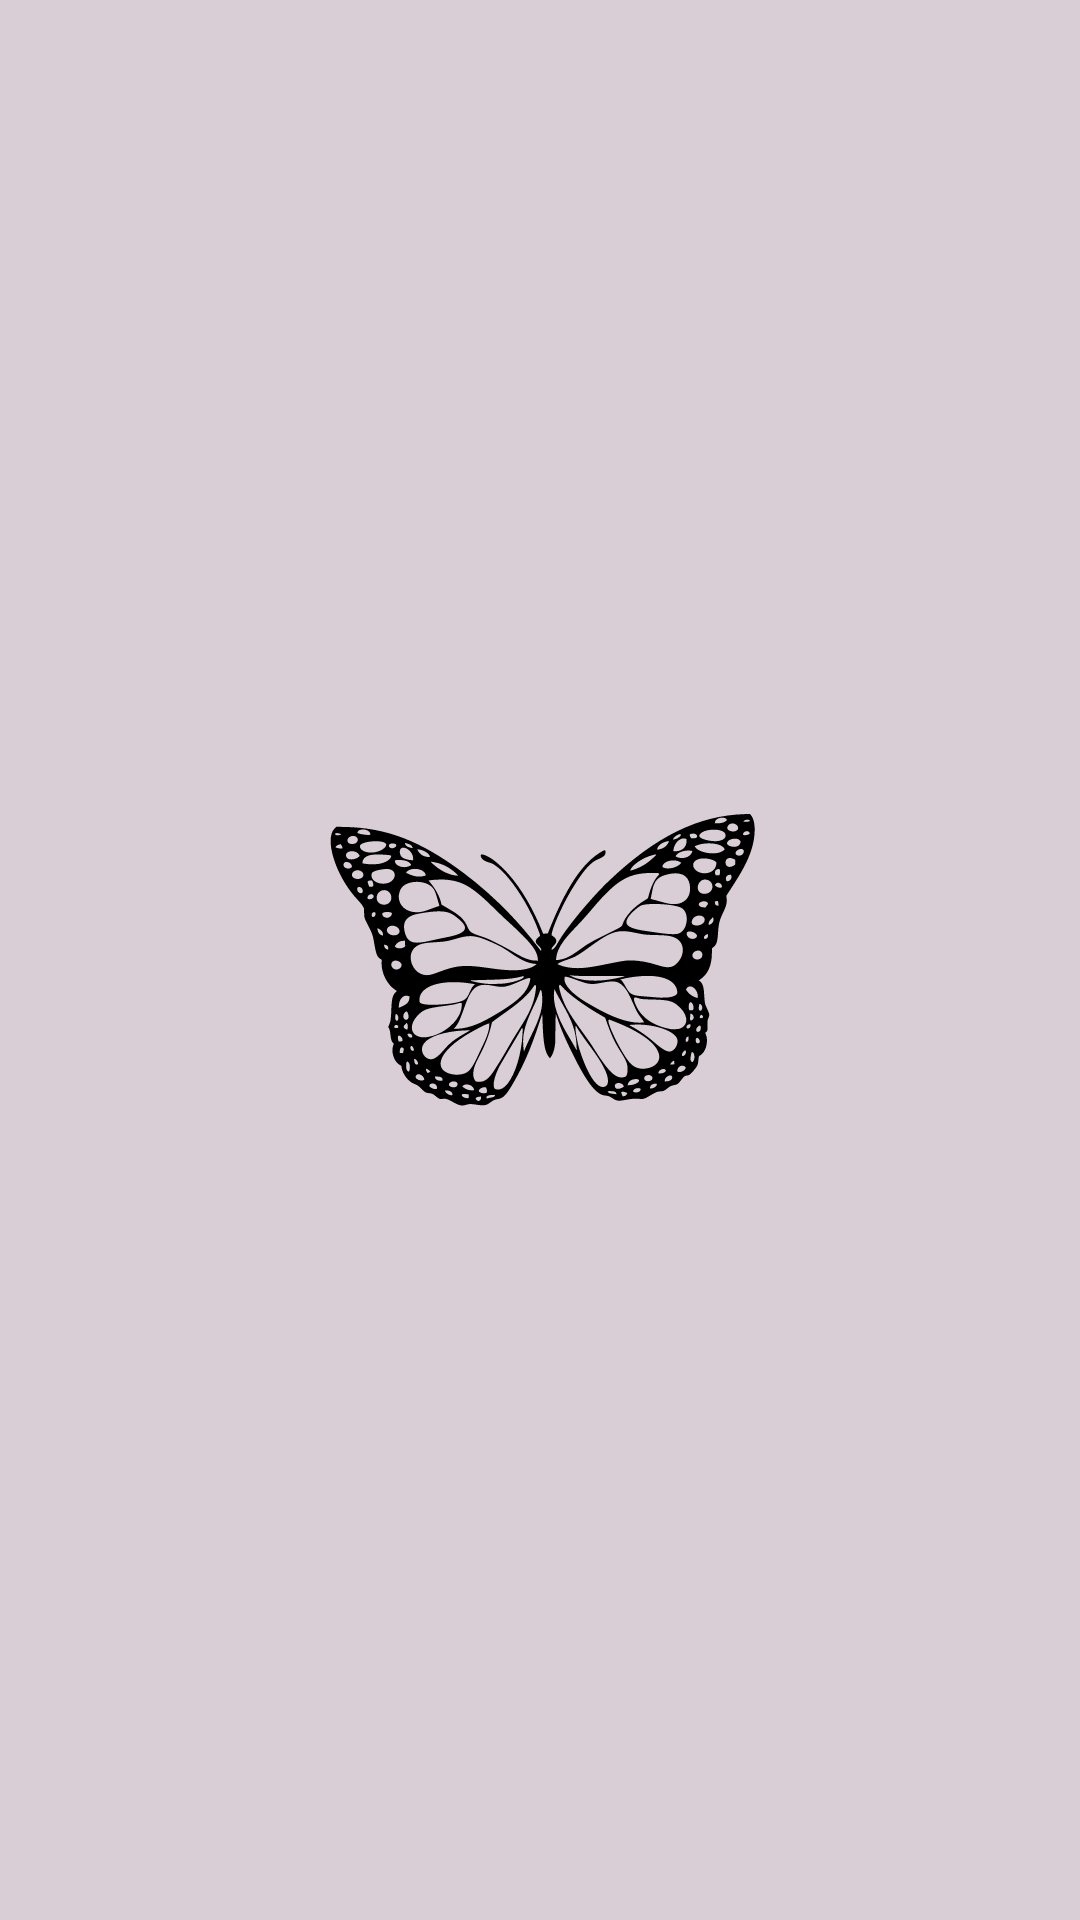 aesthetic butterfly wallpaper